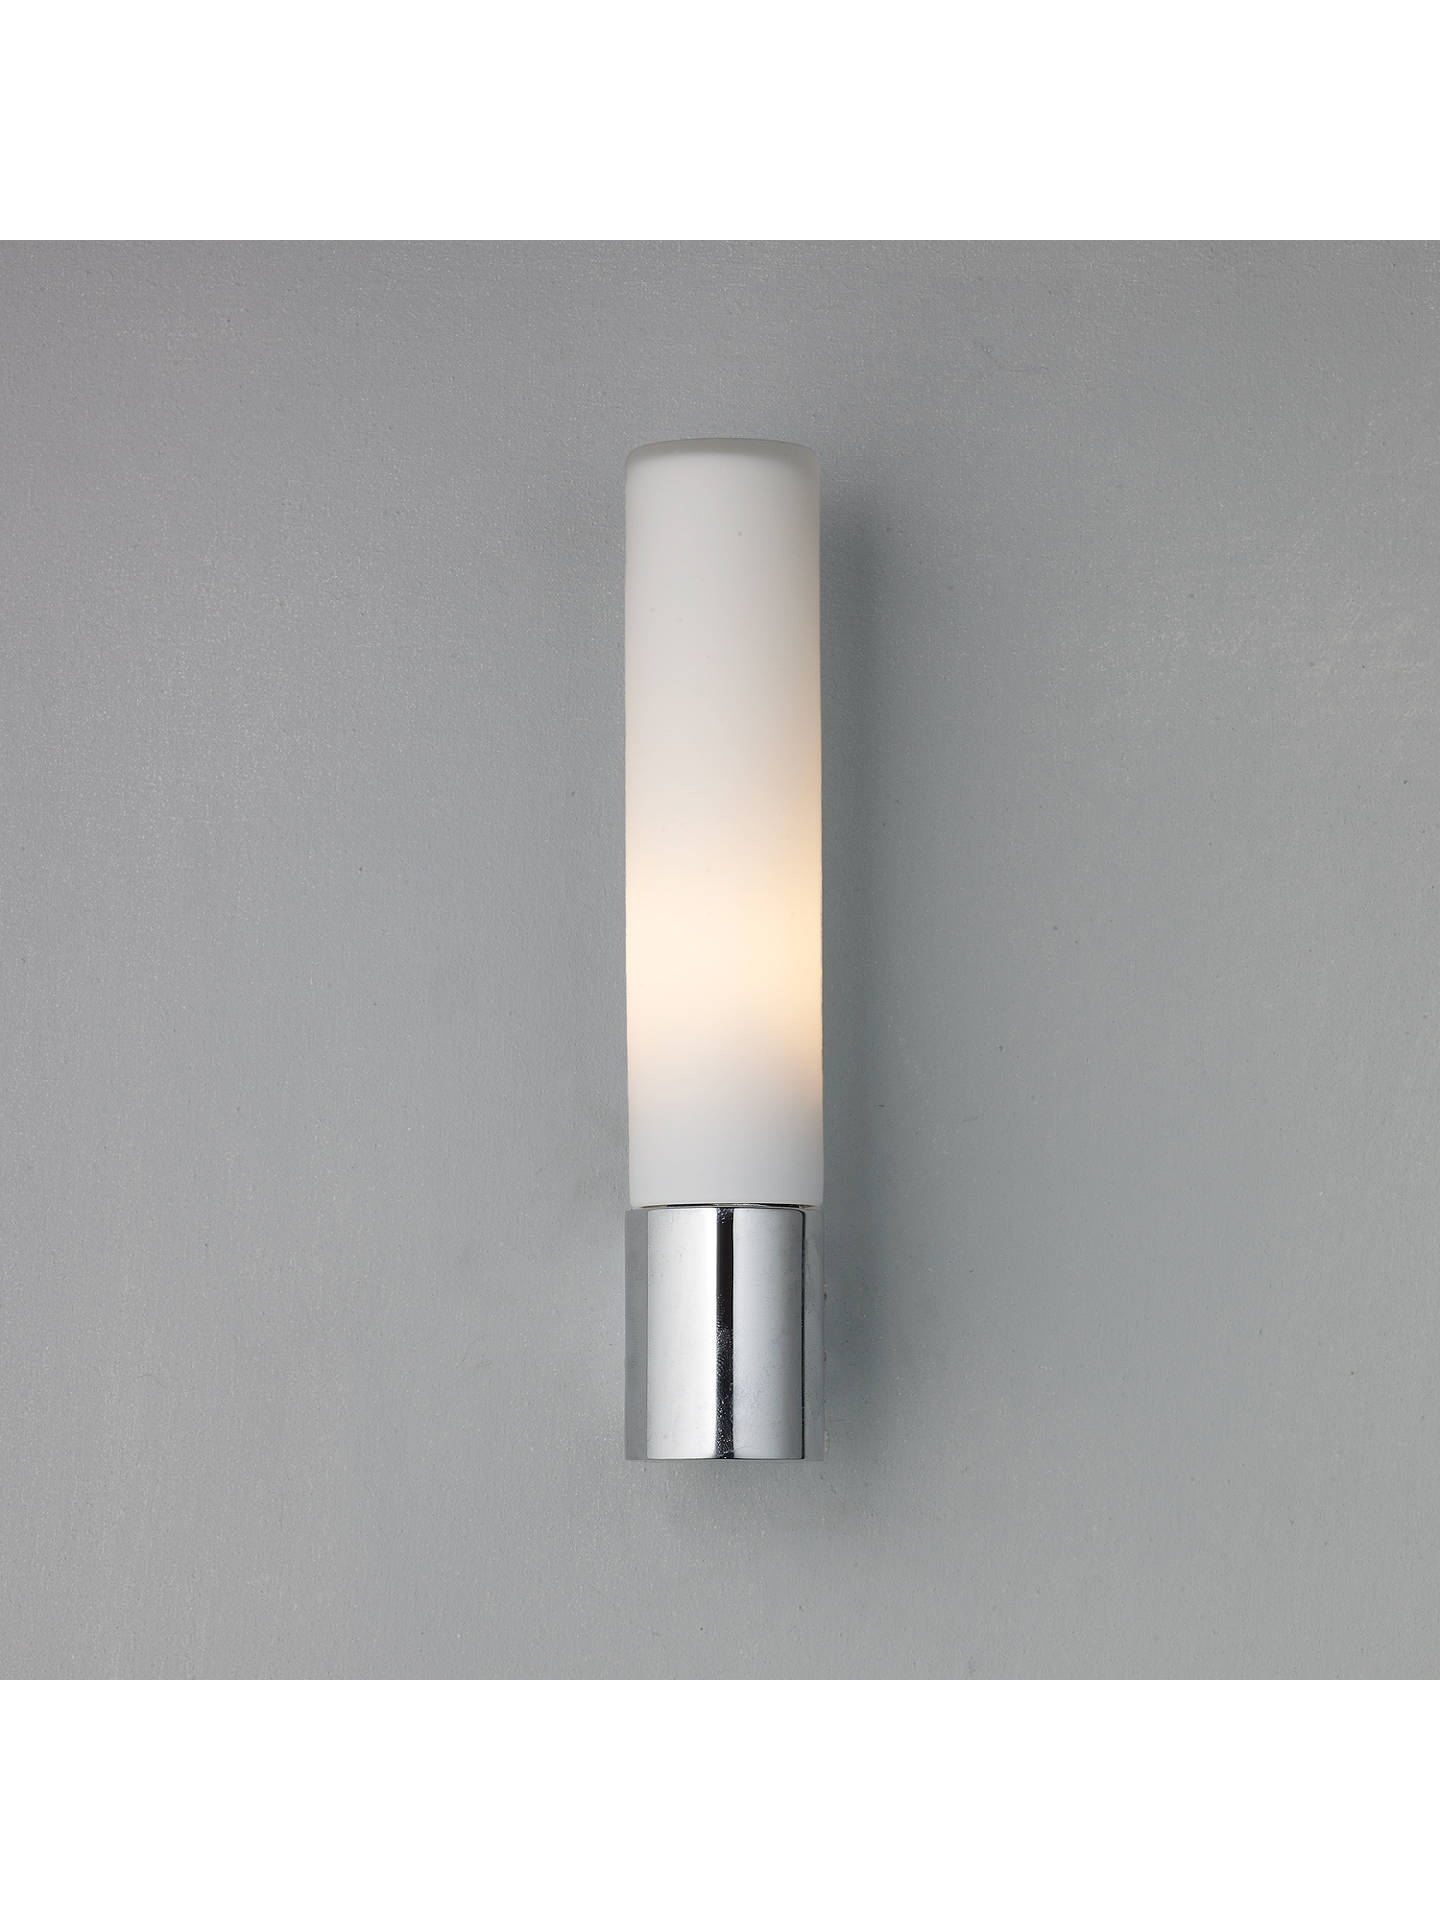 astro bari bathroom wall light at john lewis partners rh johnlewis com amazon wall lights for bathroom wall lights for bathrooms australia